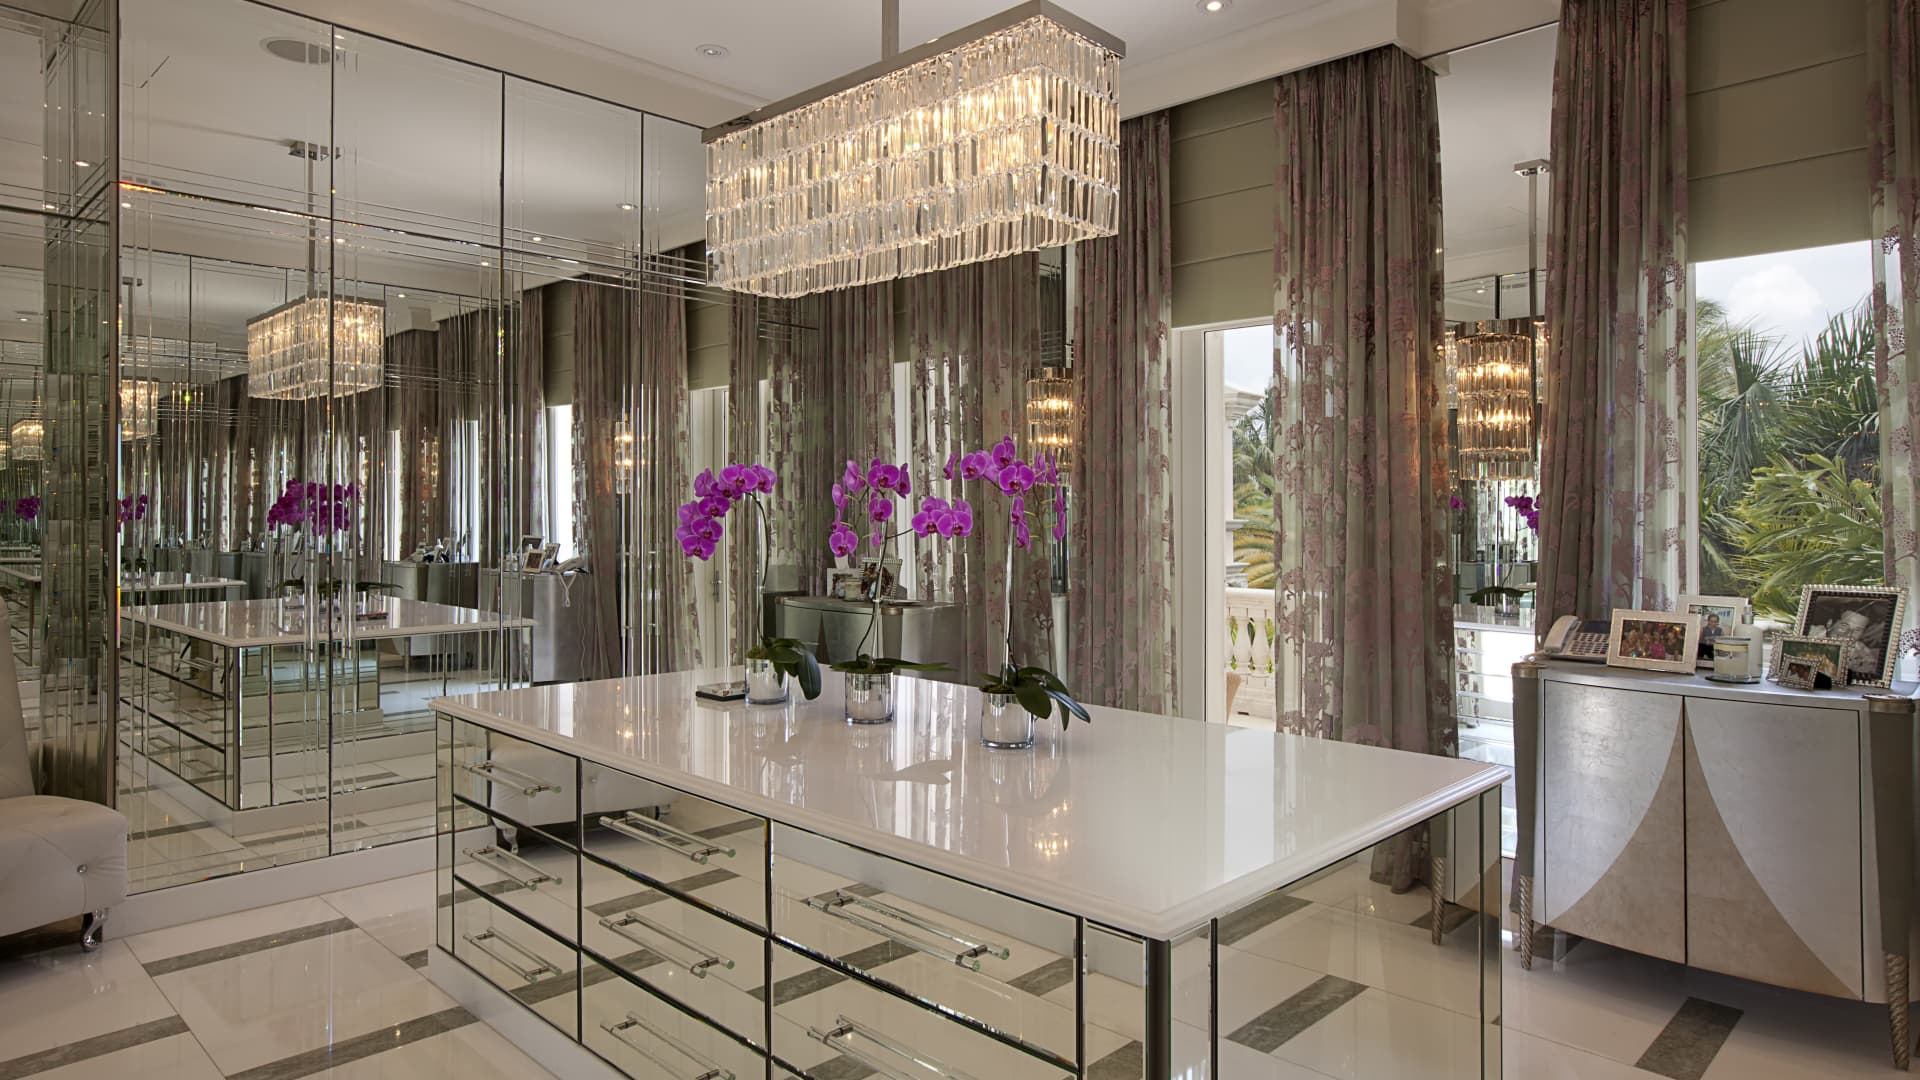 The stunning closet has floor-to-ceiling mirrors.